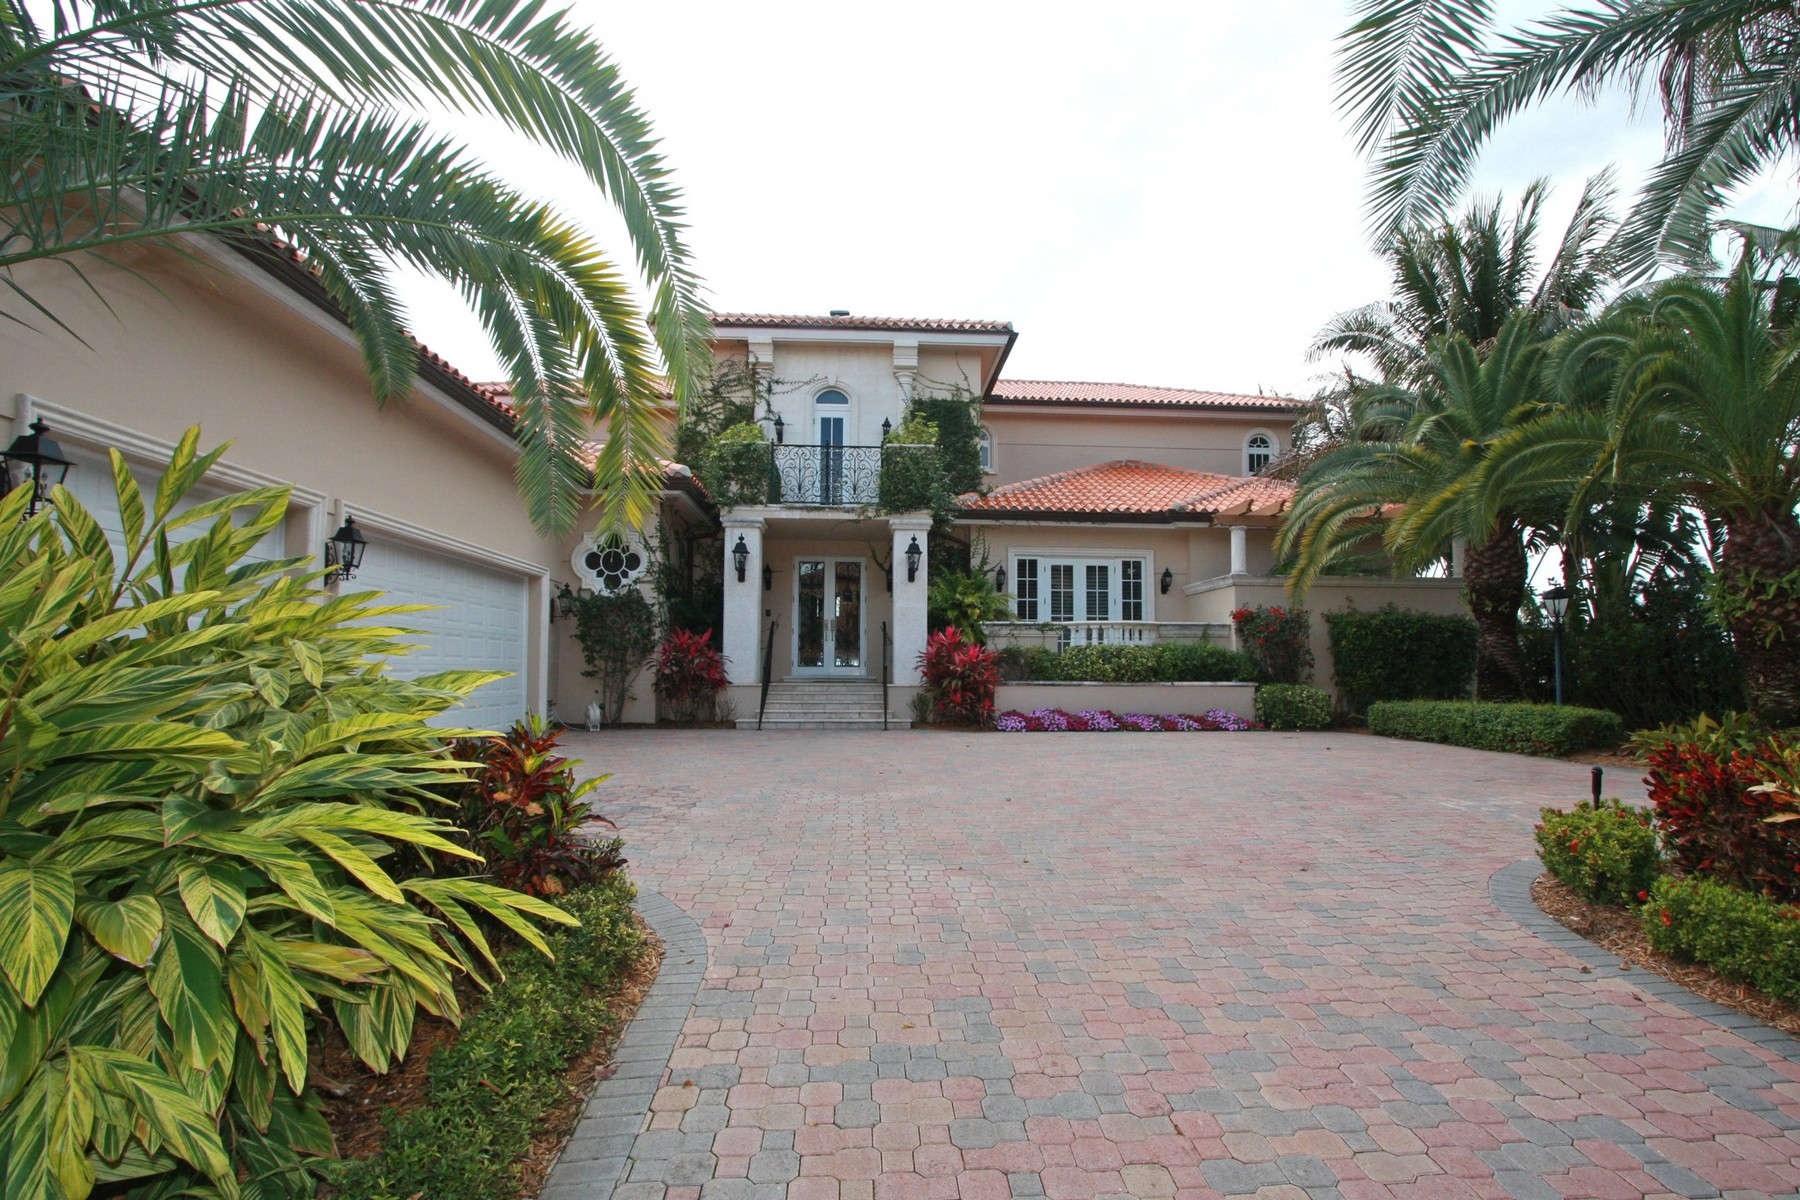 Single Family Home for Sale at 13678 Deering Bay Dr Coral Gables, Florida, 33158 United States